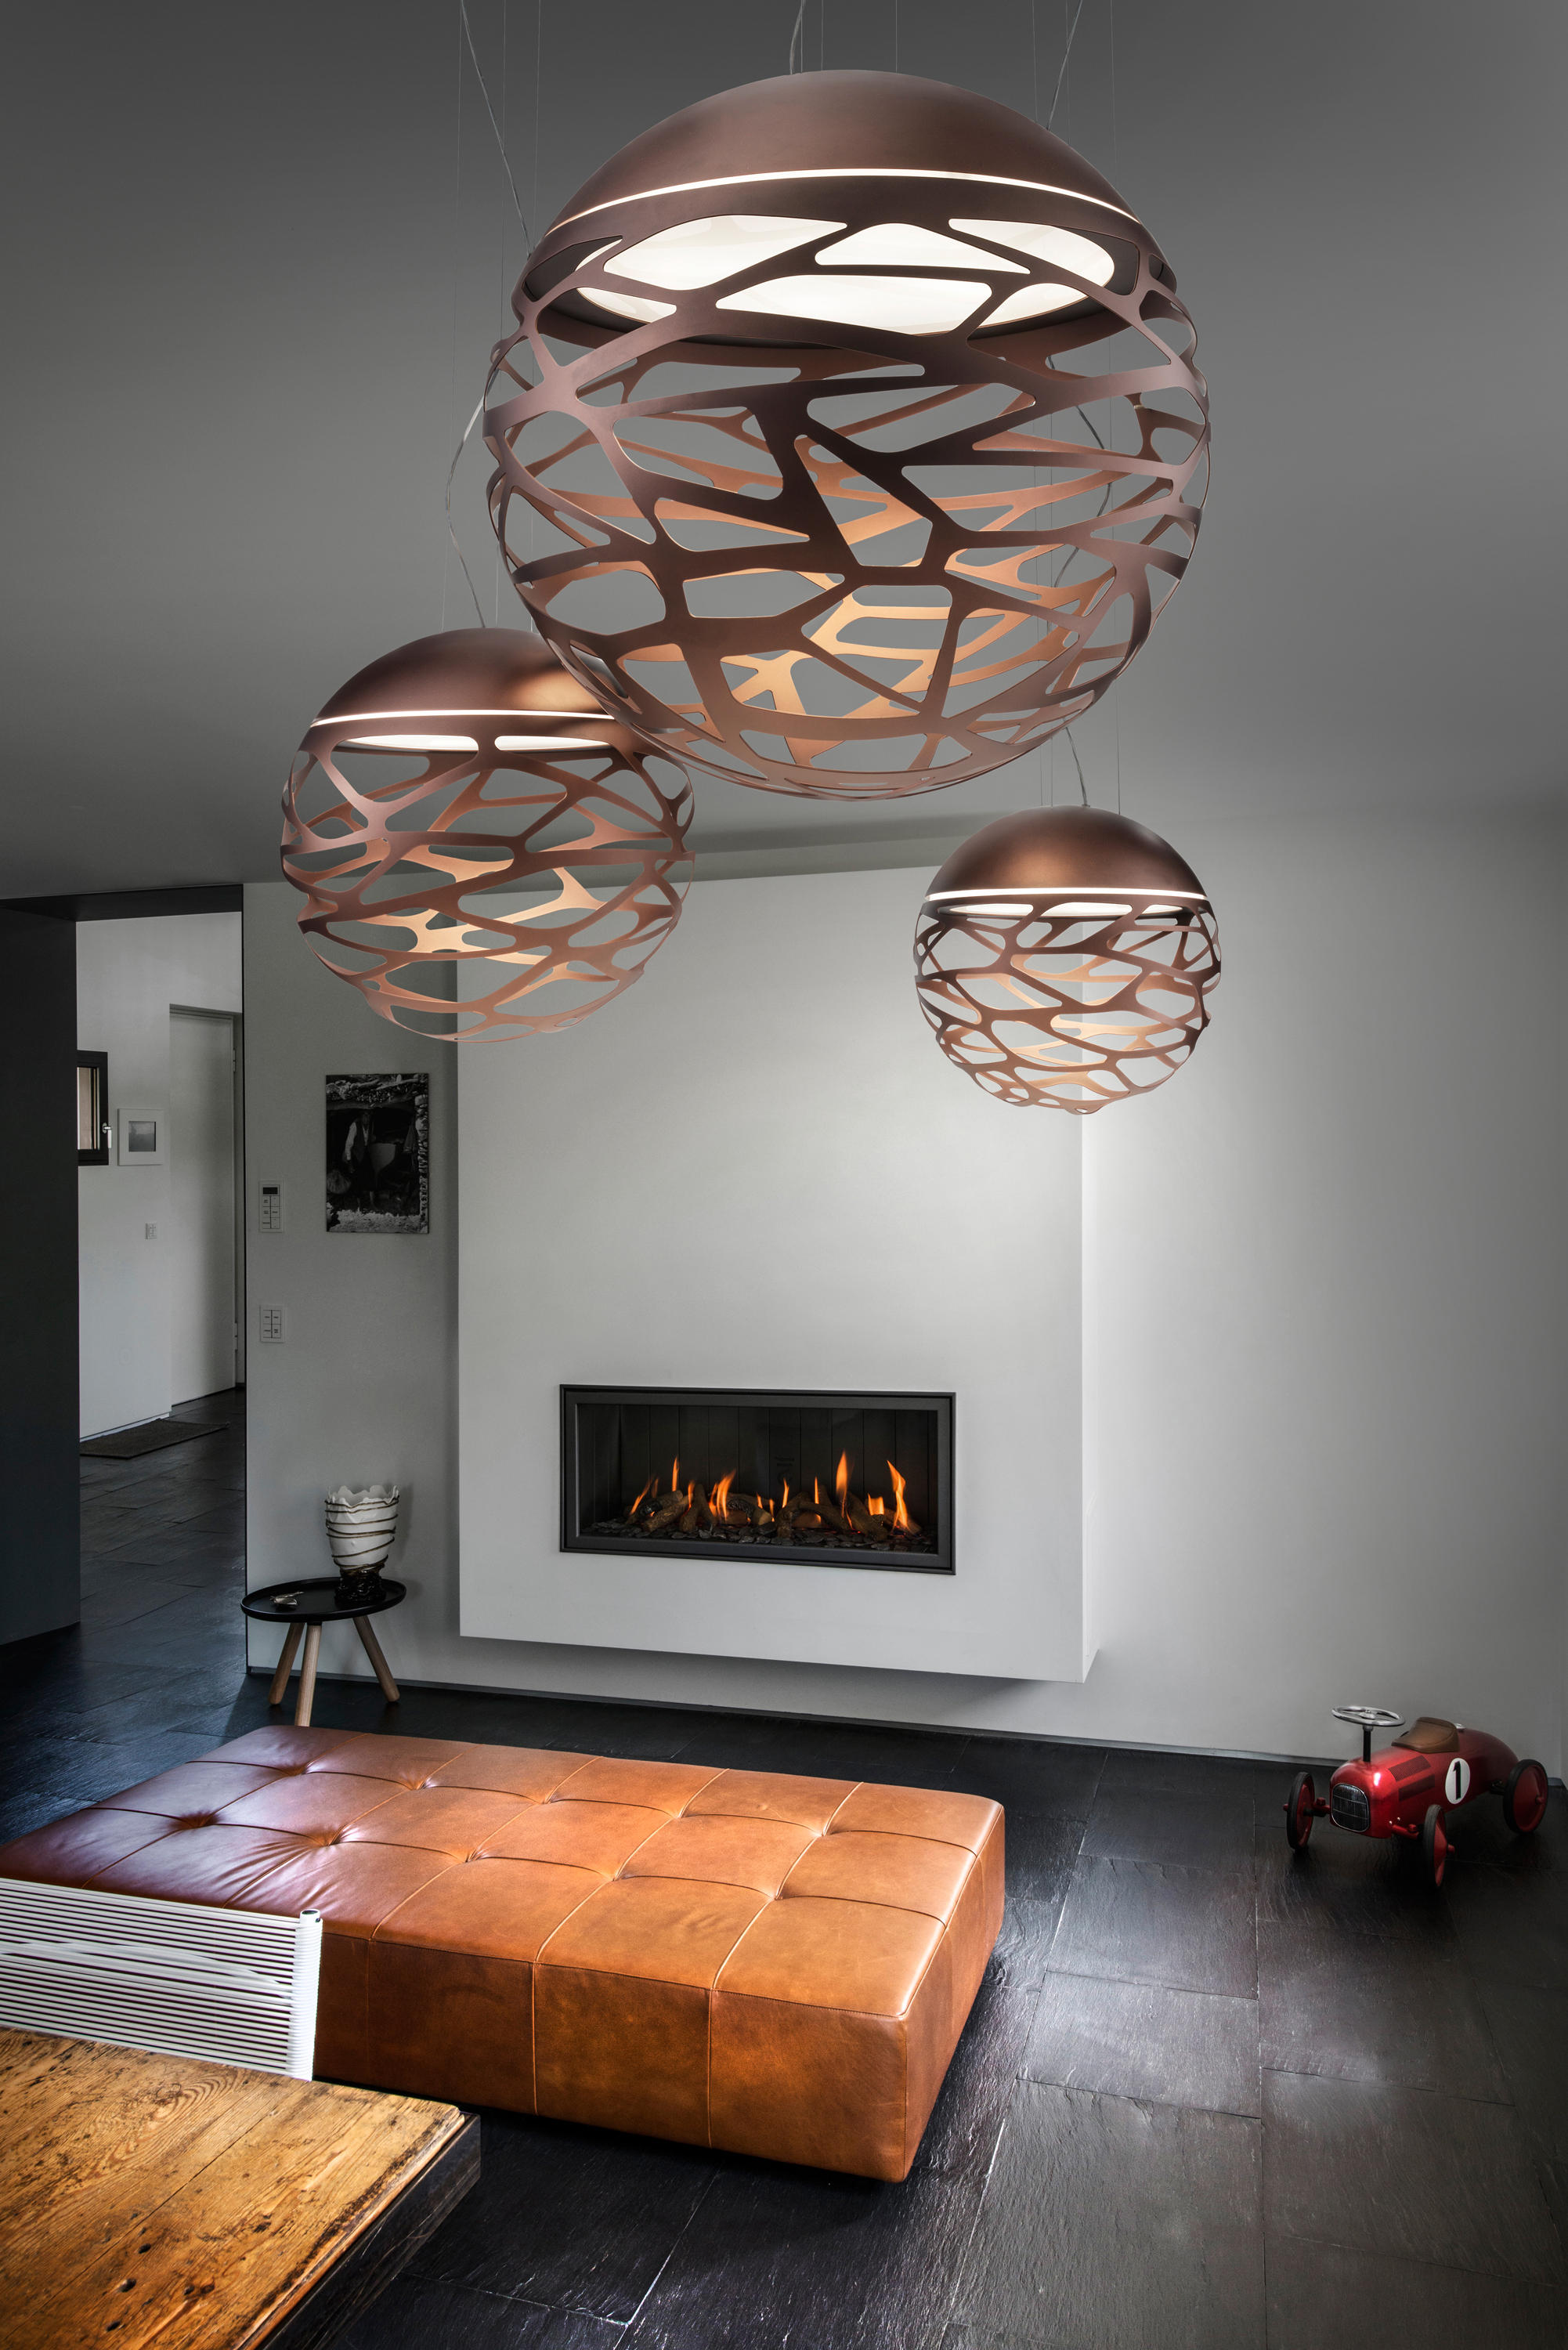 kelly sphere general lighting from studio italia design architonic. Black Bedroom Furniture Sets. Home Design Ideas